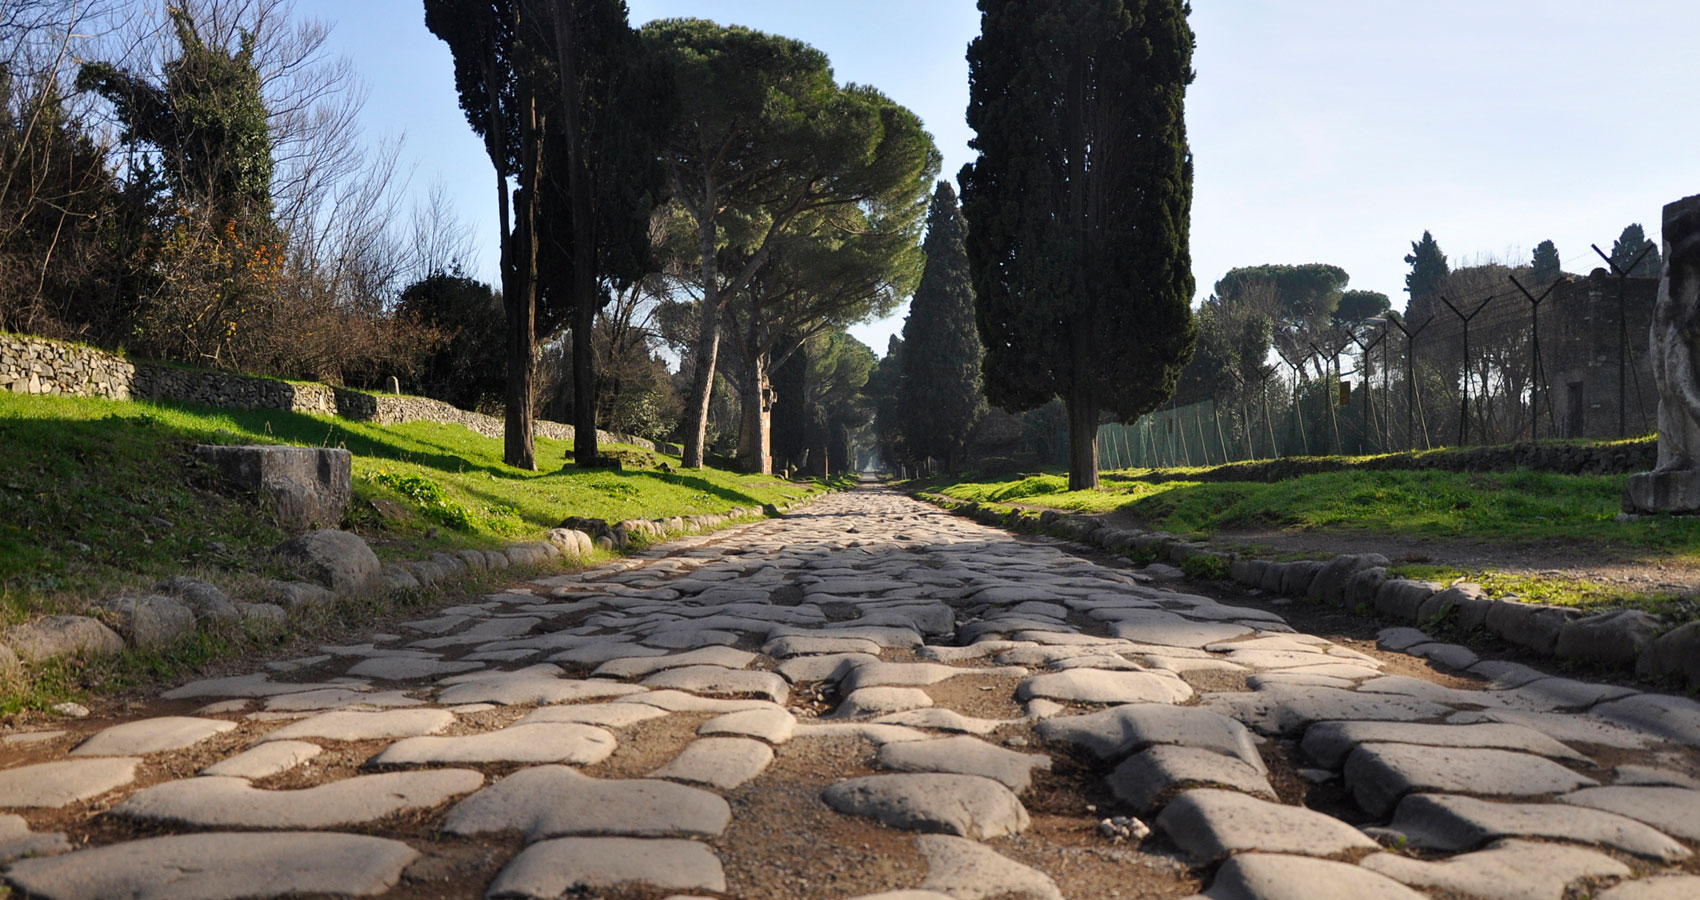 Via Appia written by Polly Oliver at Spillwords.com